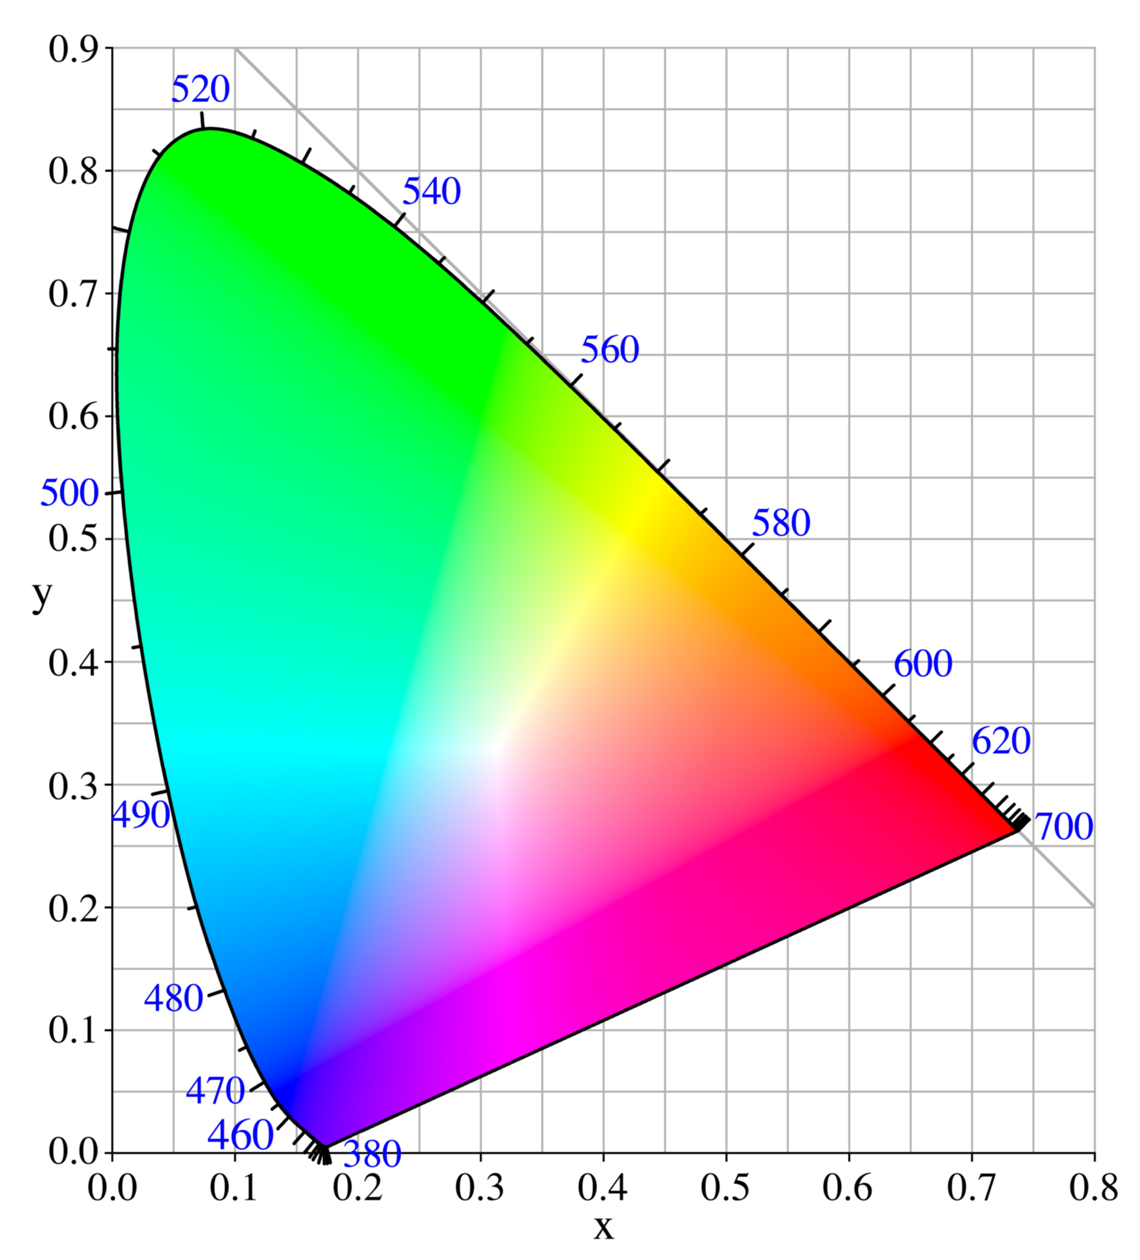 CIE 1931 color diagram